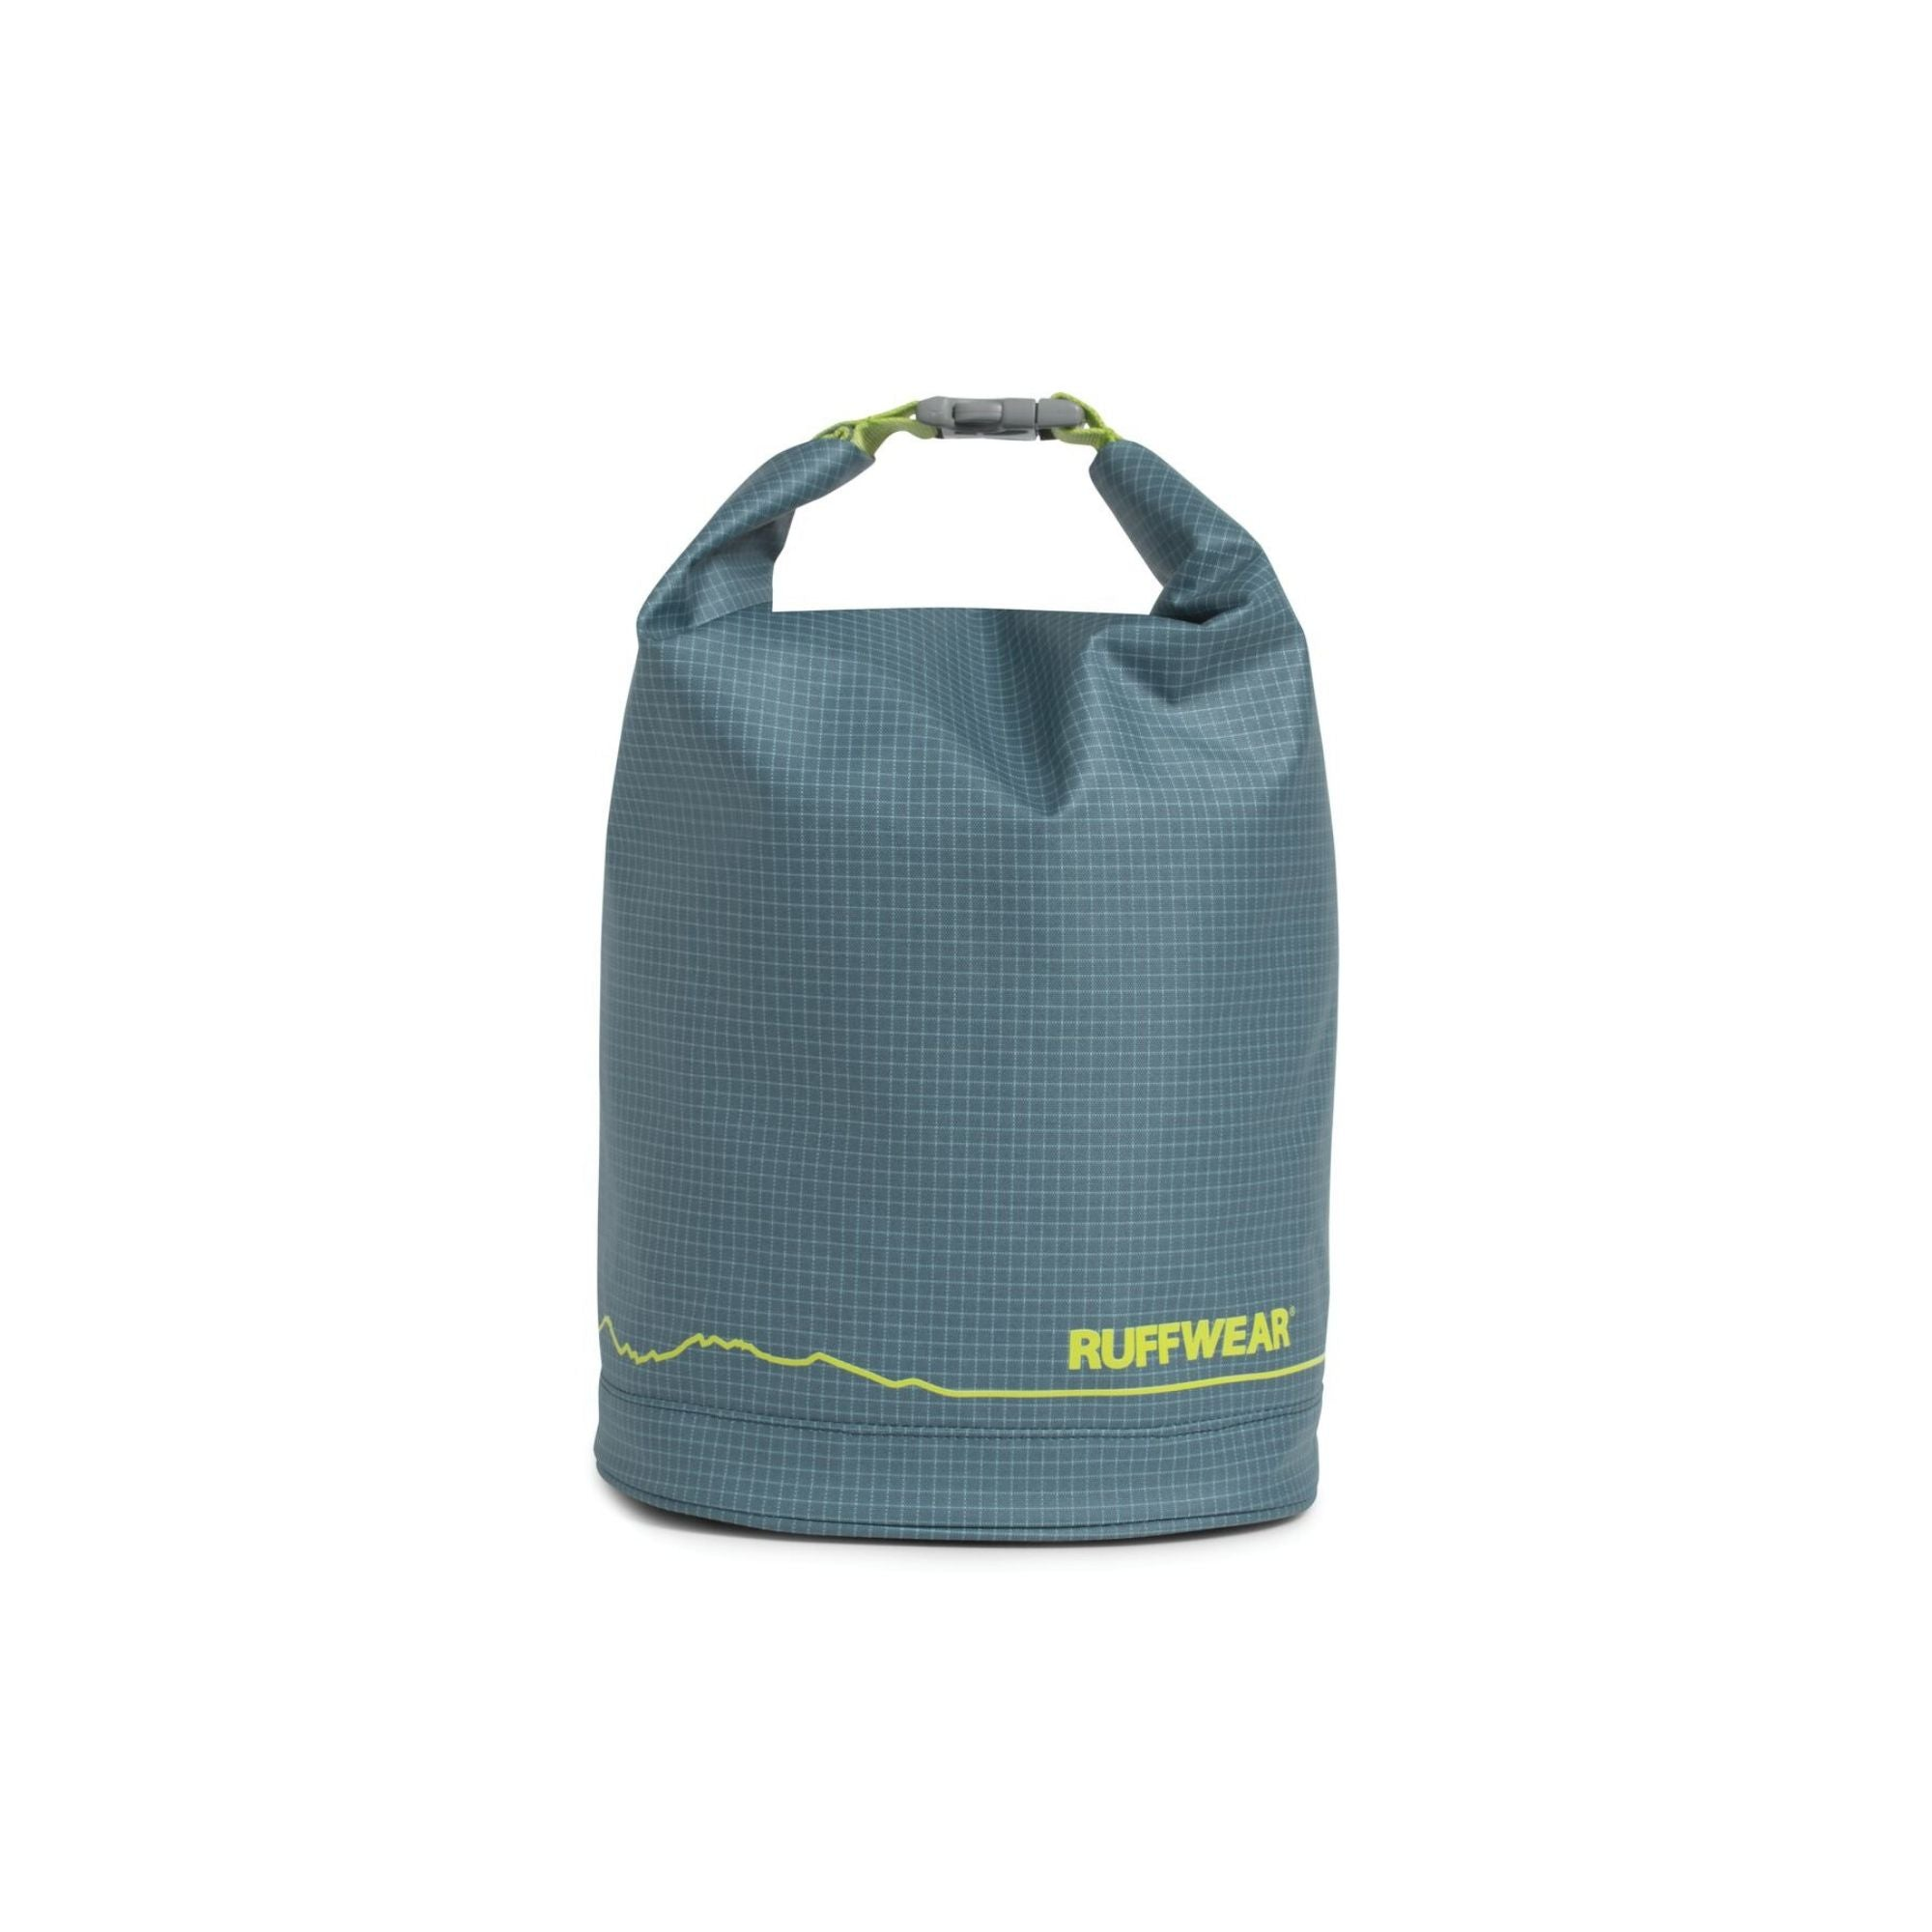 Ruffwear Kibble Kaddie Portable Dog Food Storage Bag | Barks & Bunnies